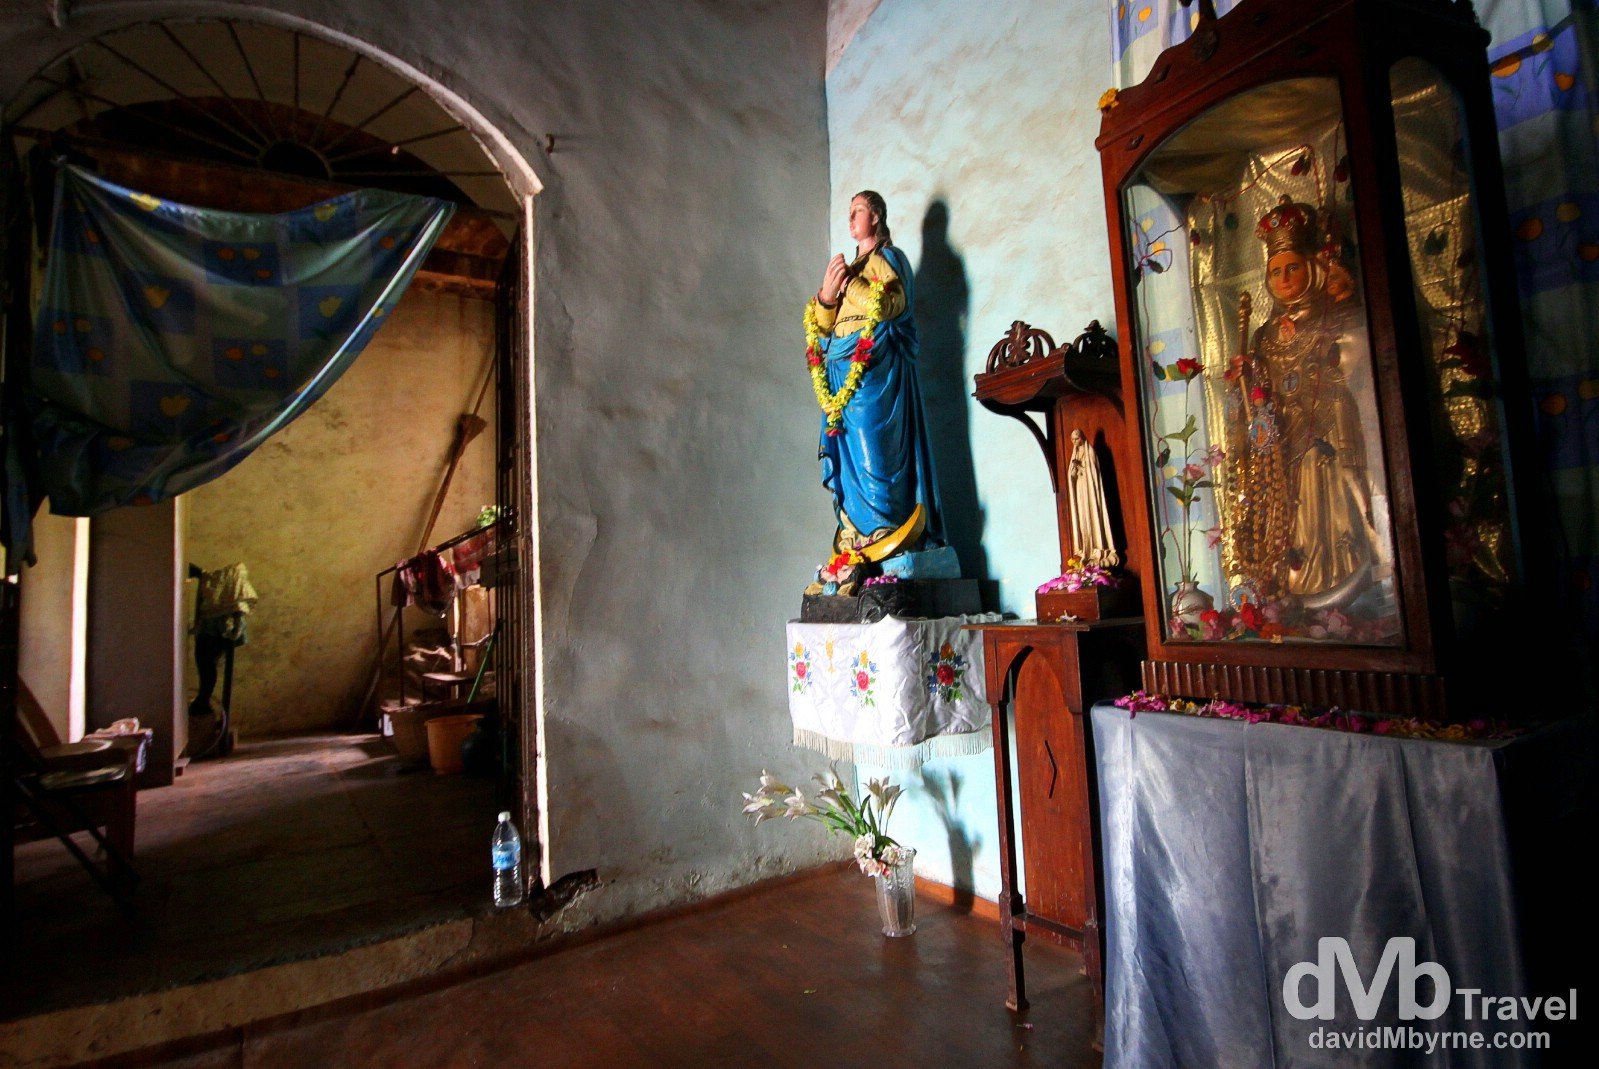 The Inside a section of the Church Of Our Lady Of The Immaculate Conception, Panaji, Goa, India. September 28th 2012.